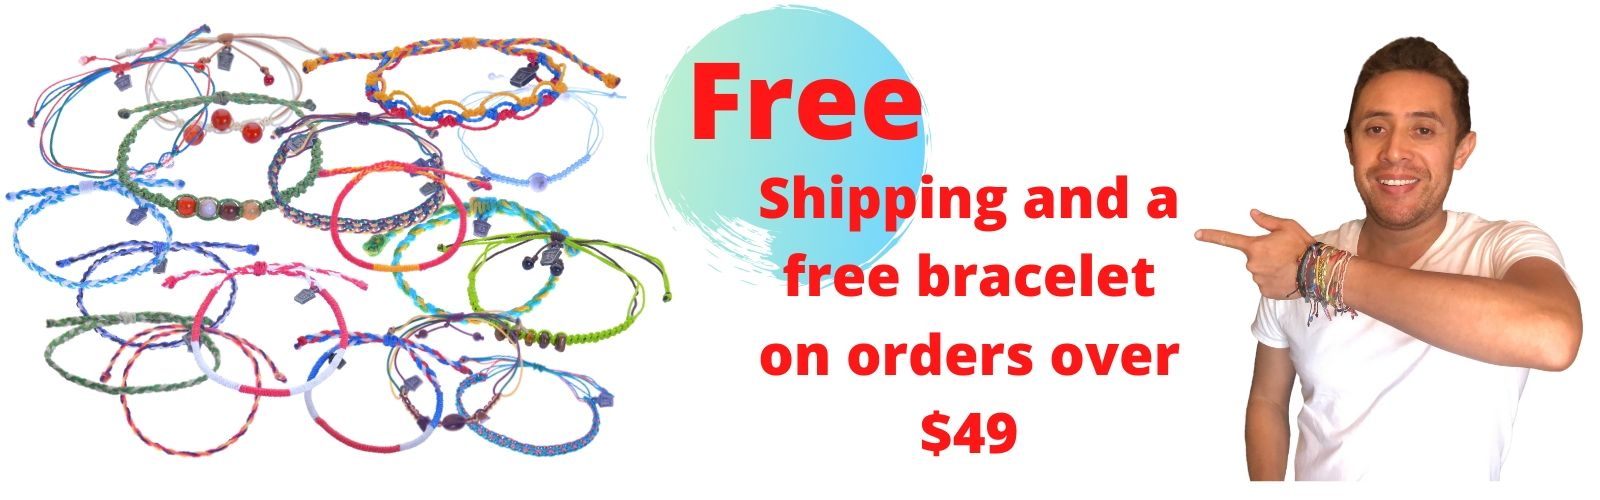 Fiesta Sabor Free Shipping and a Free Bracelet on Orders over $49